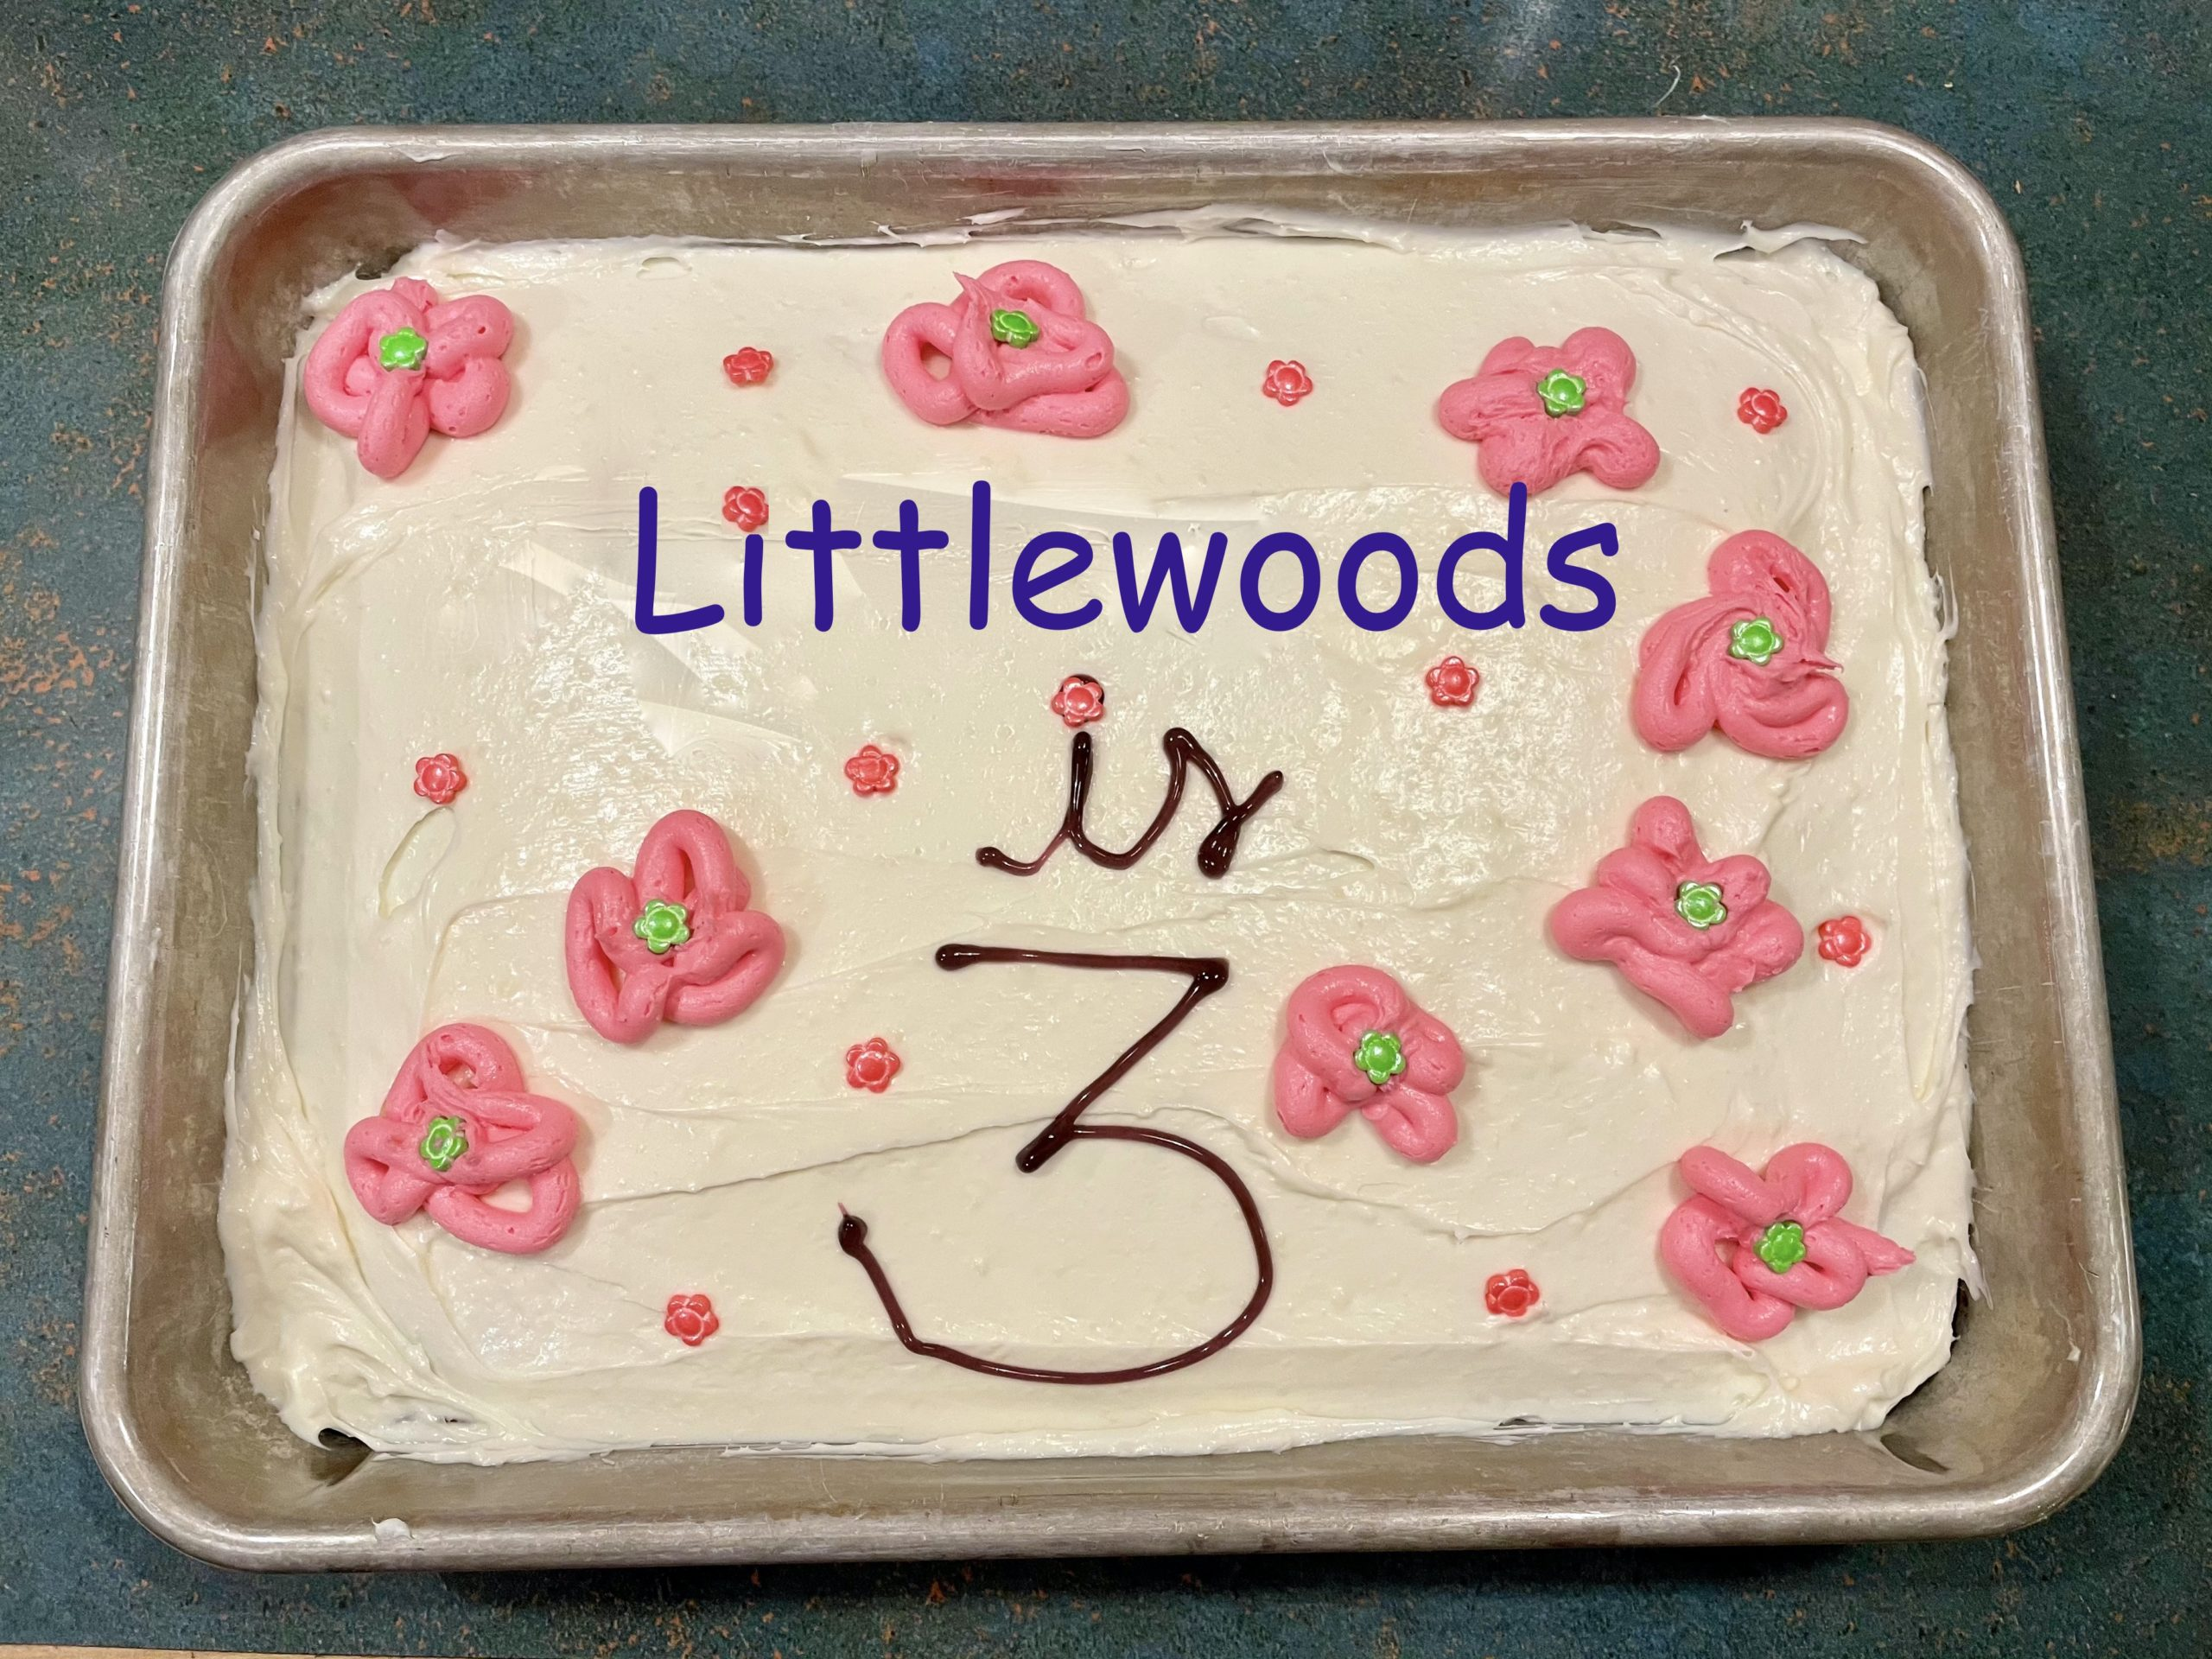 Littlewoods' 3rd Birthday and Other February 2021 Expenses - Frugalwoods